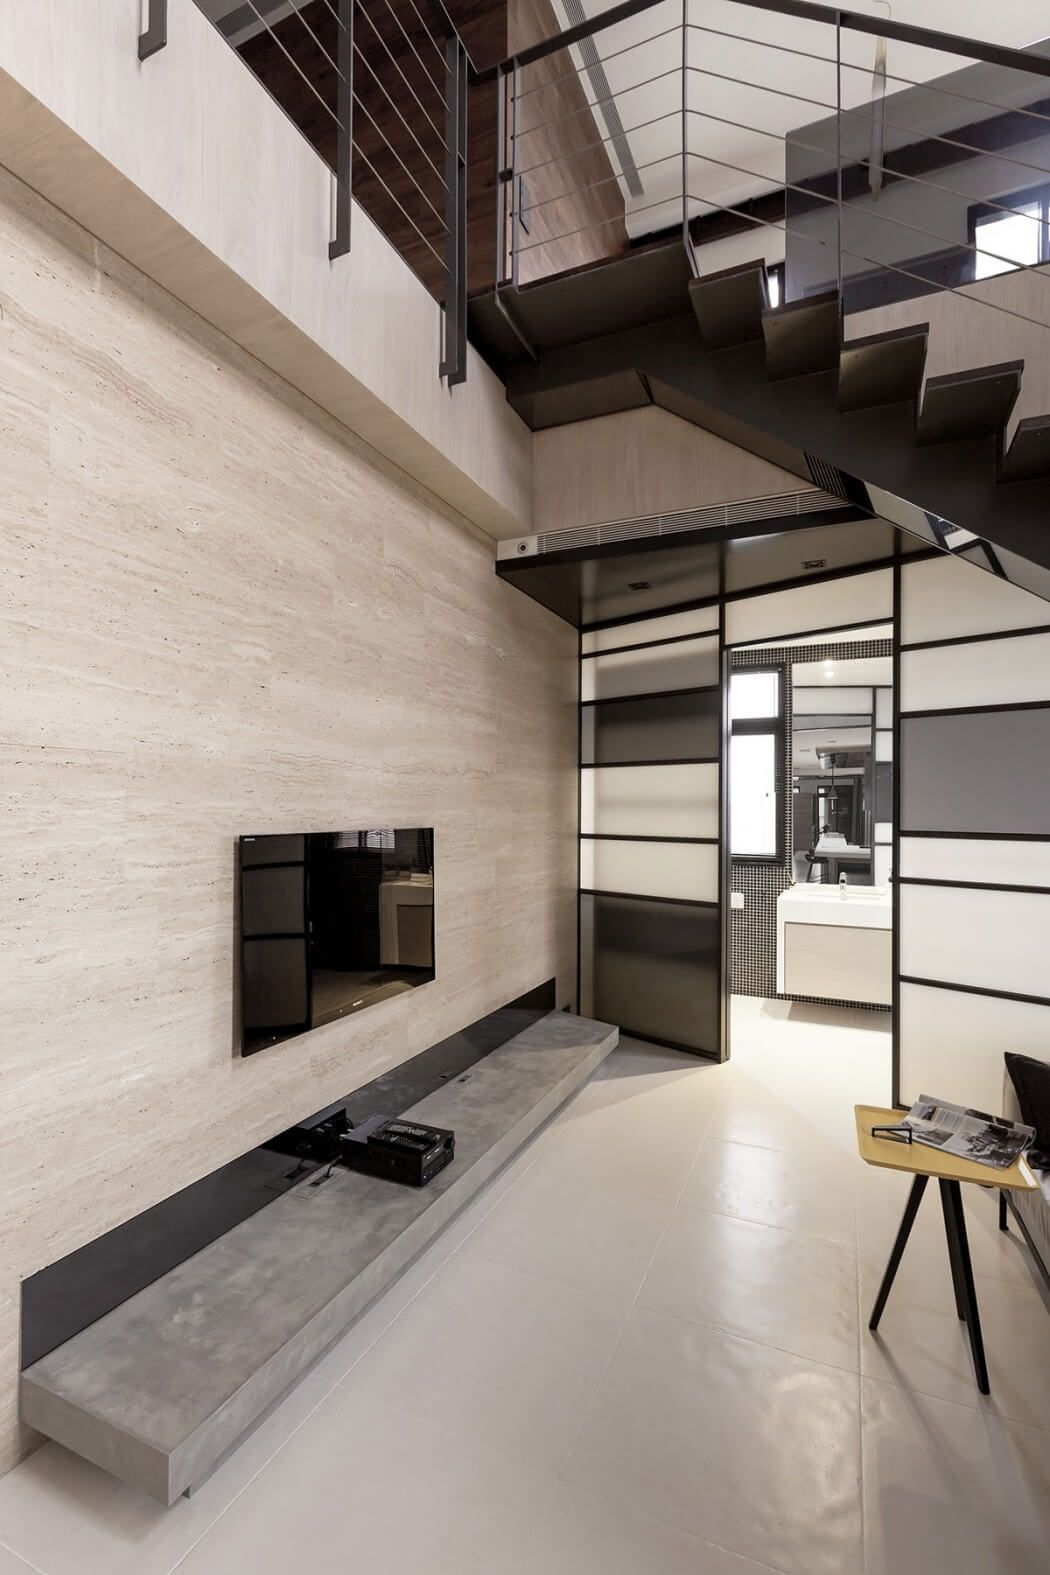 Lo Residence by LGCA DESIGN | SPACES WE SWOON OVER | Pinterest ...